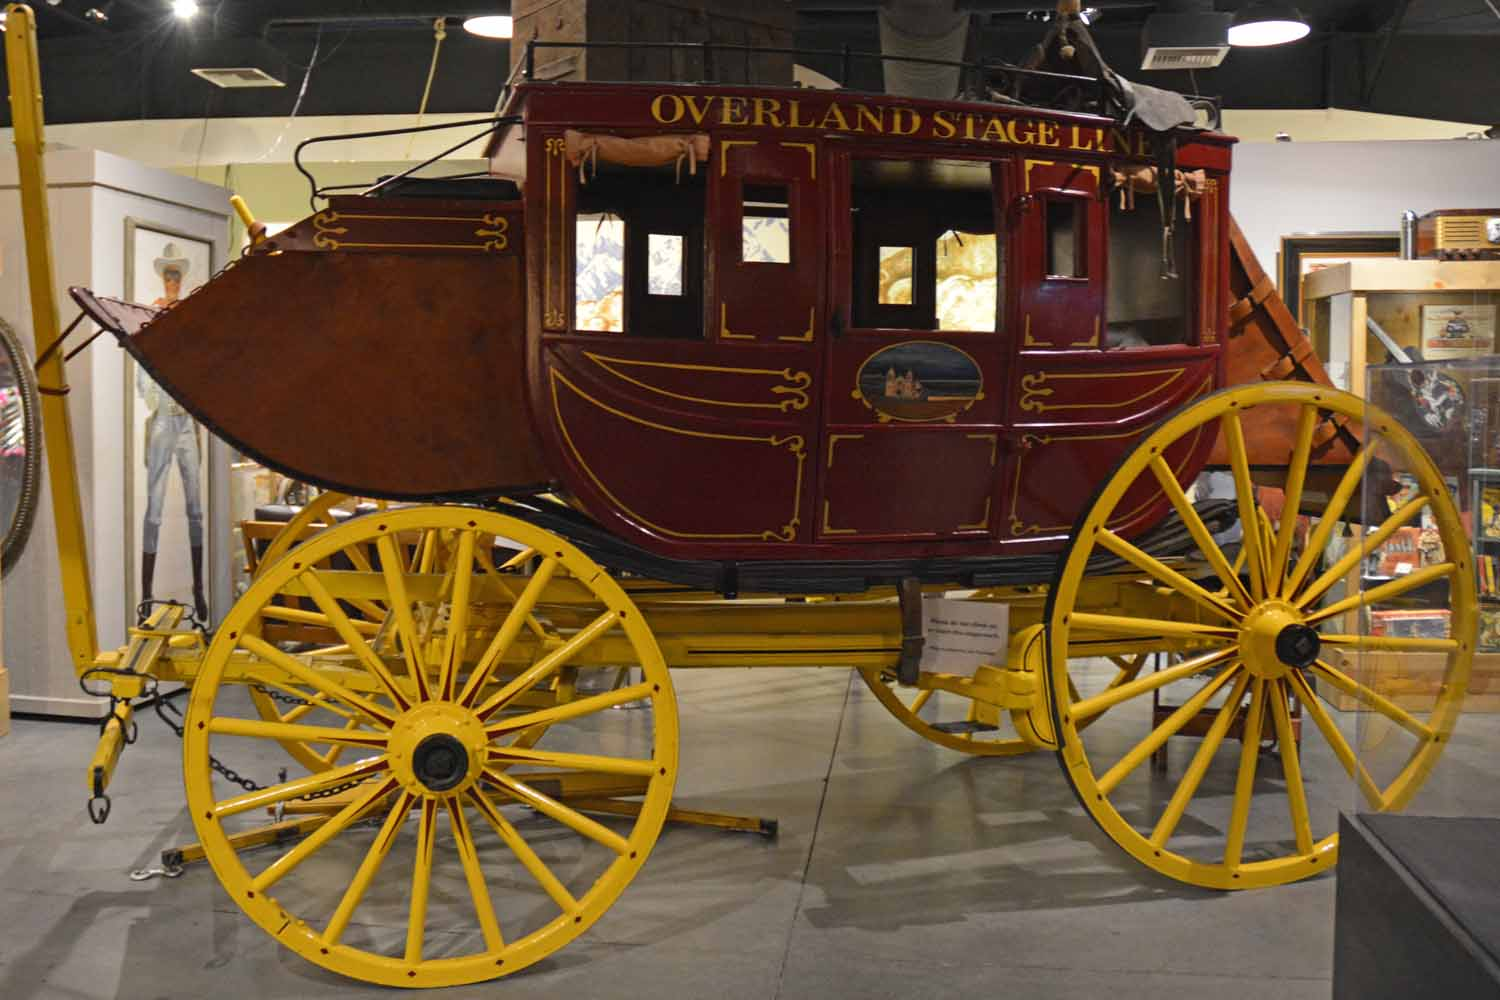 Lots of old cars from the movies and the stage coach that was used in many films are on display.